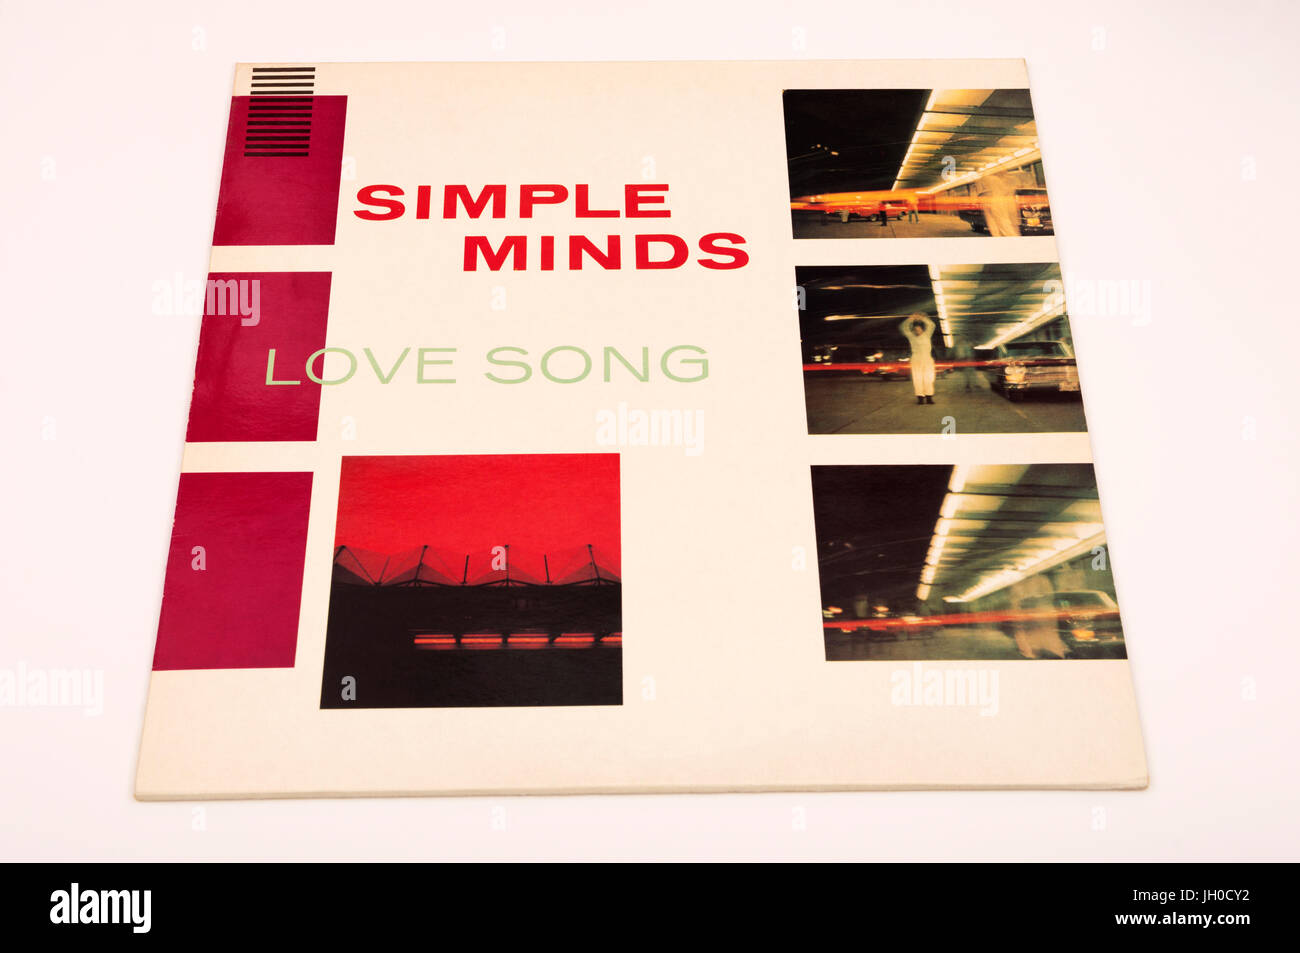 Simple Minds Love Song 12 inch vinyl single - Stock Image